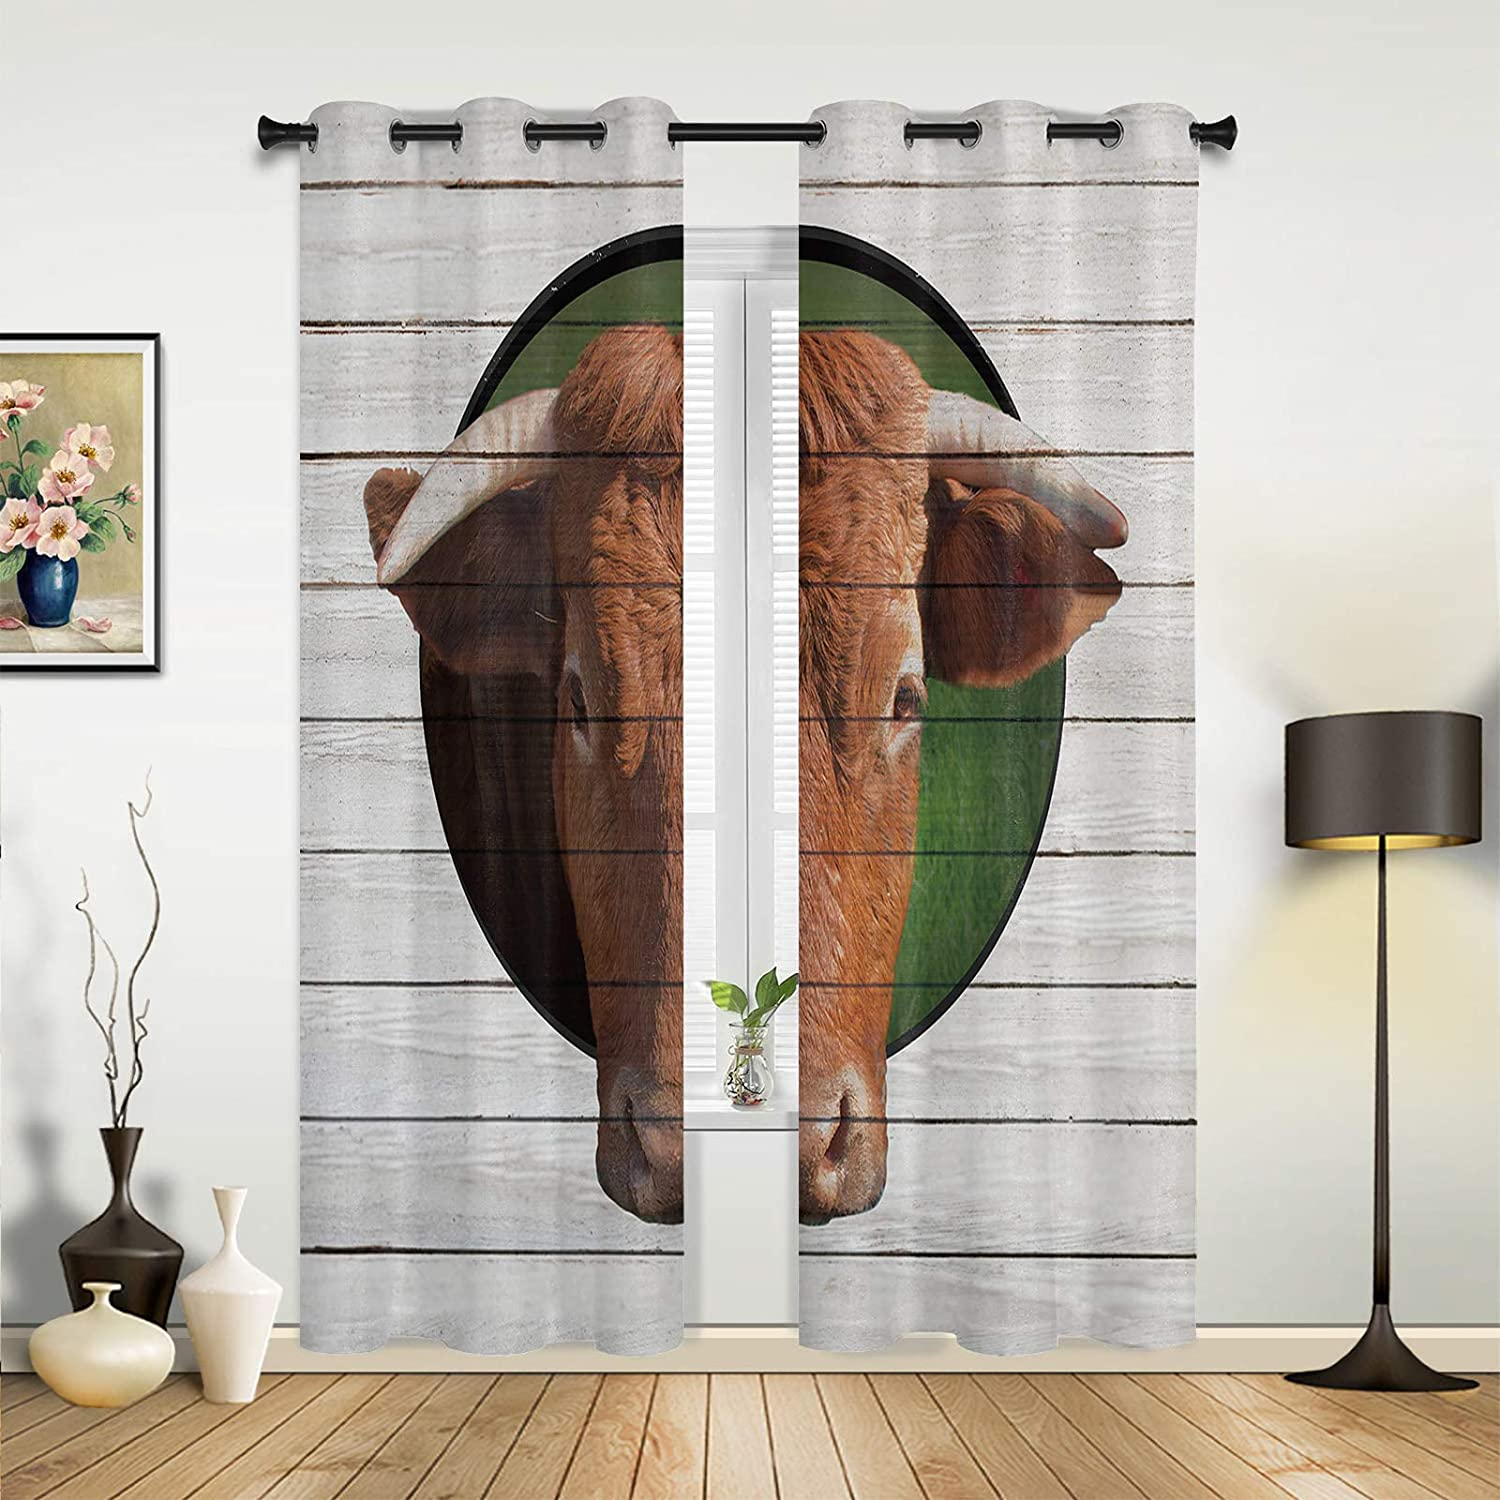 Window Sheer Curtains for Bedroom Living Funny Room San OFFicial mail order Diego Mall Ani Cow Farm